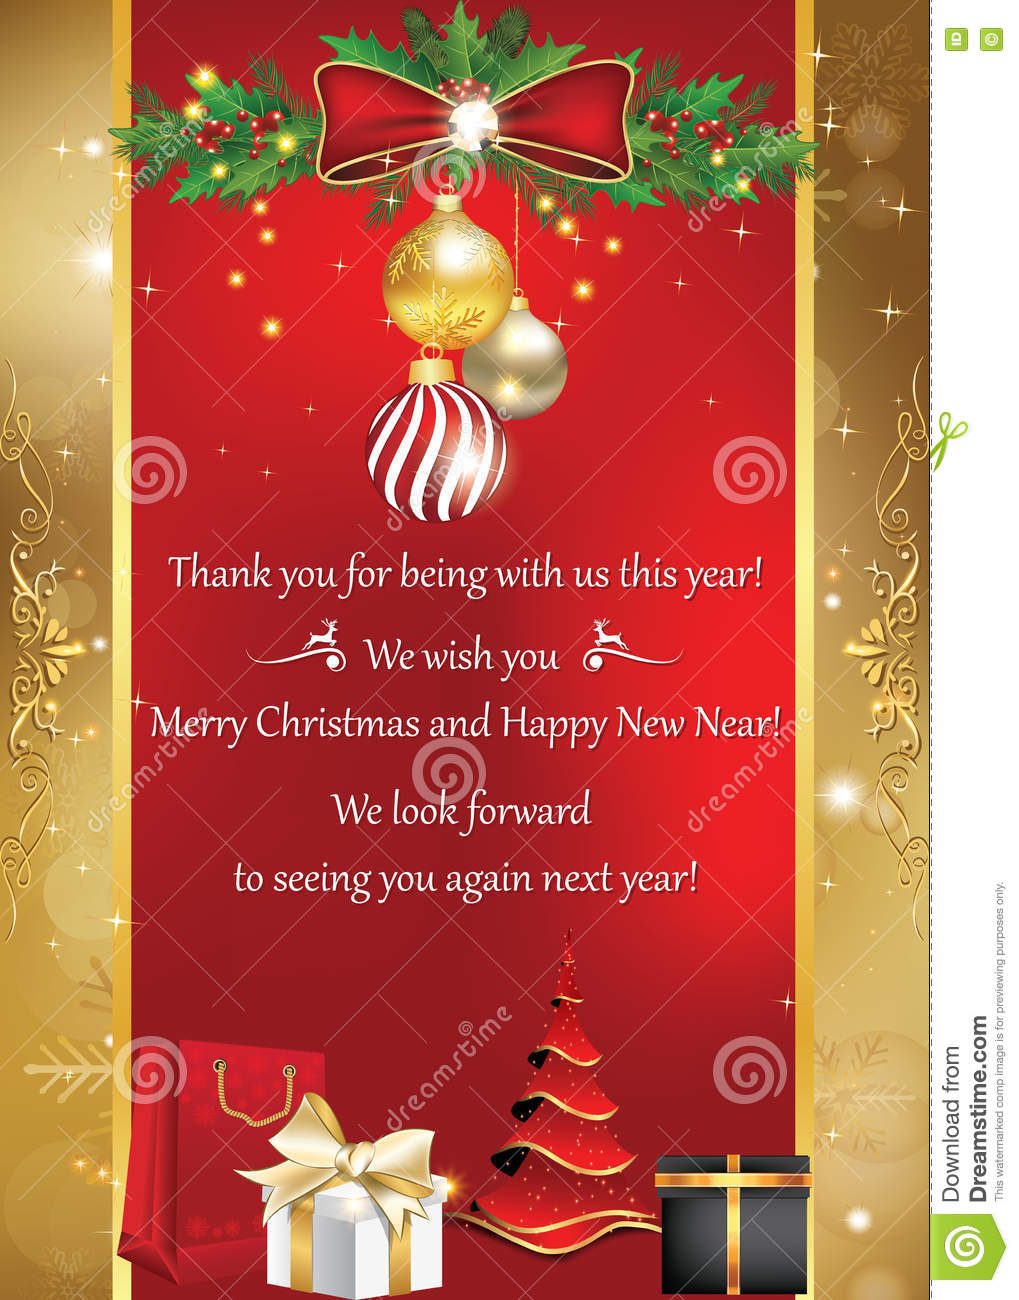 Thnak you business greeting card for winter holidays stock image royalty free stock photo kristyandbryce Image collections